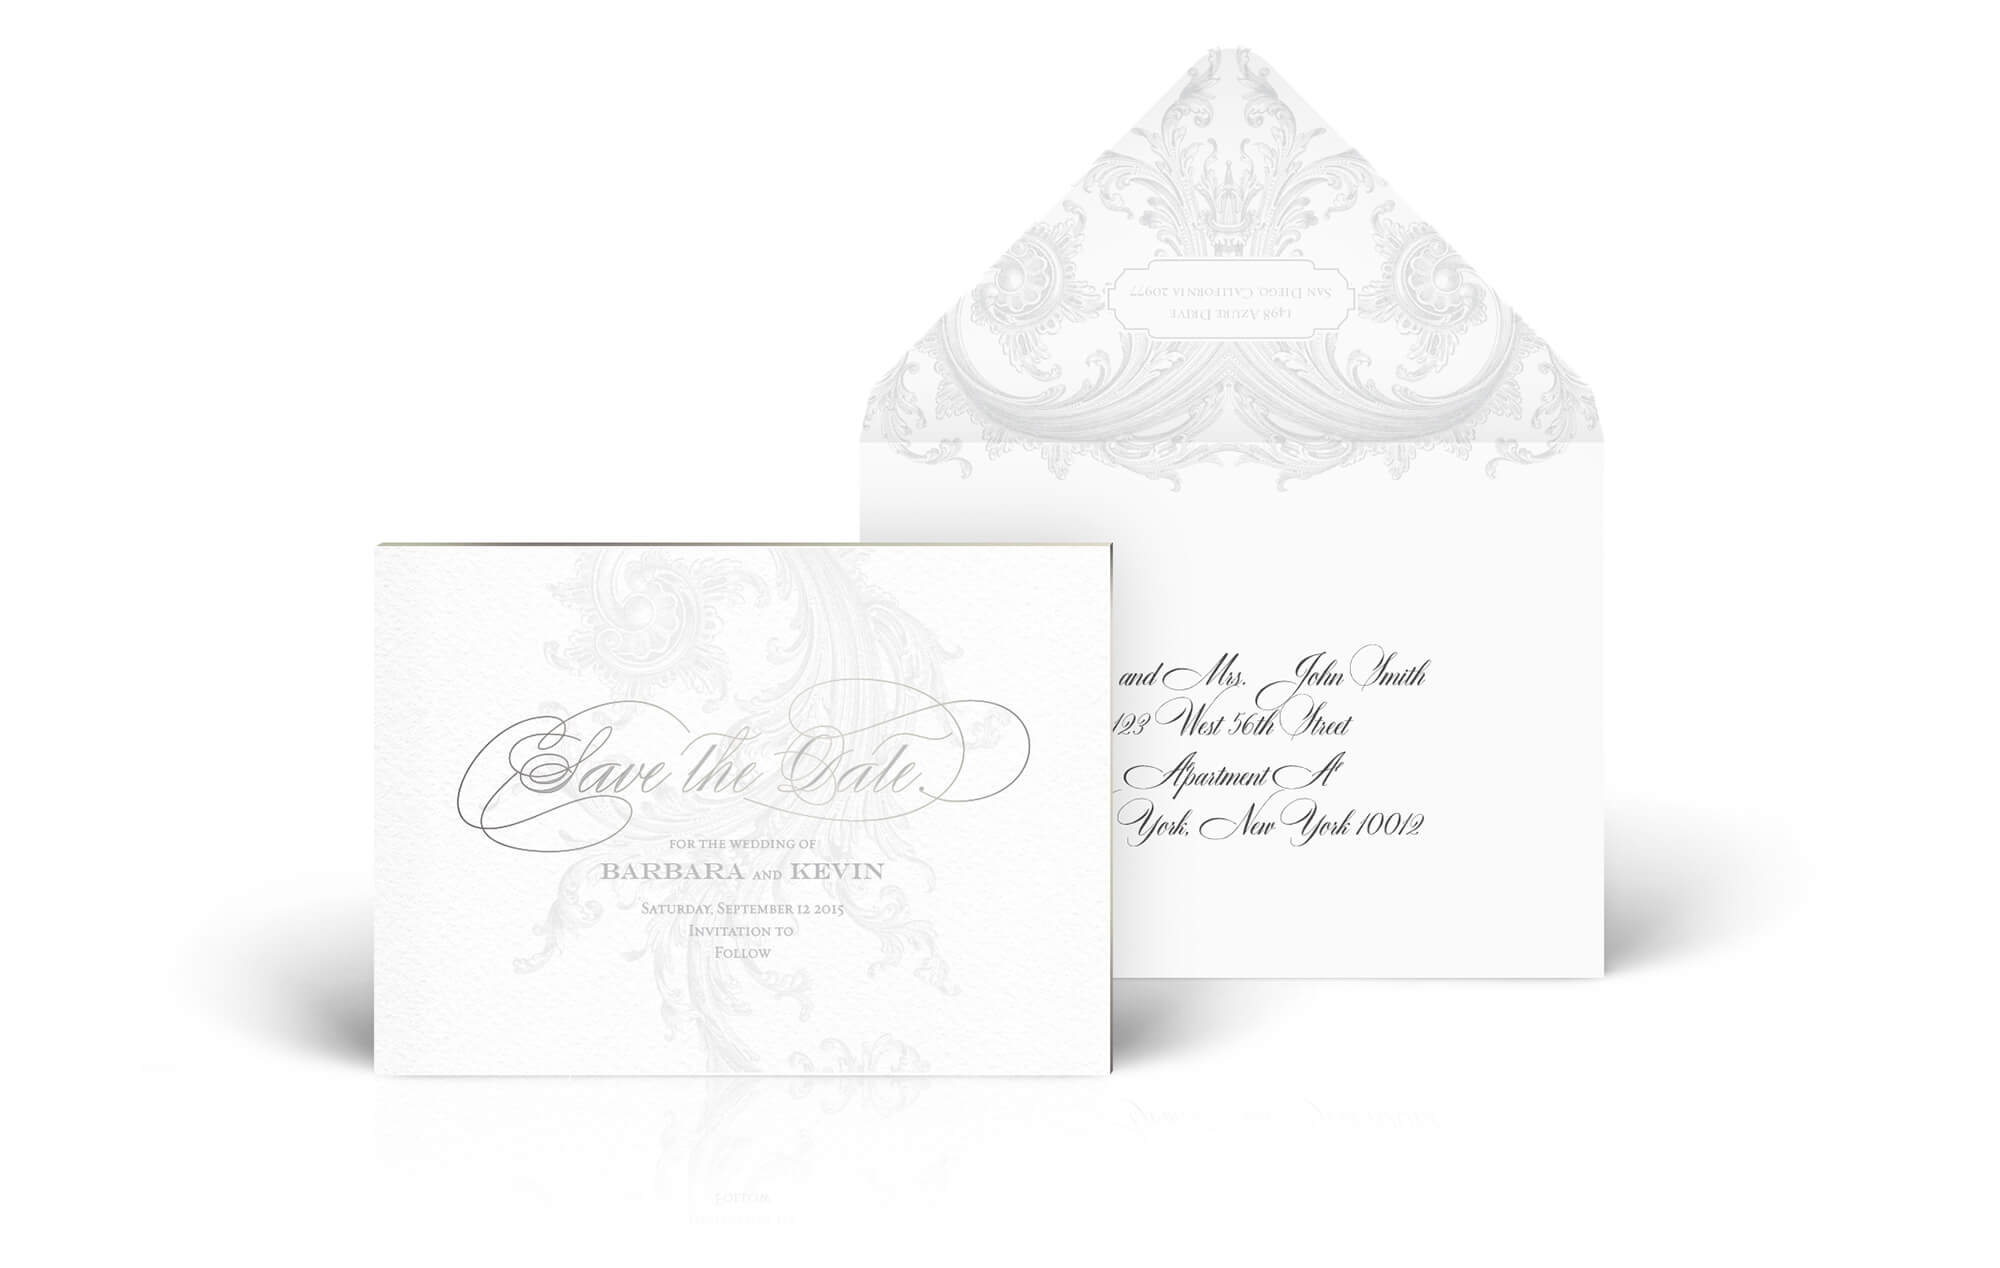 Ornate flourished save the date